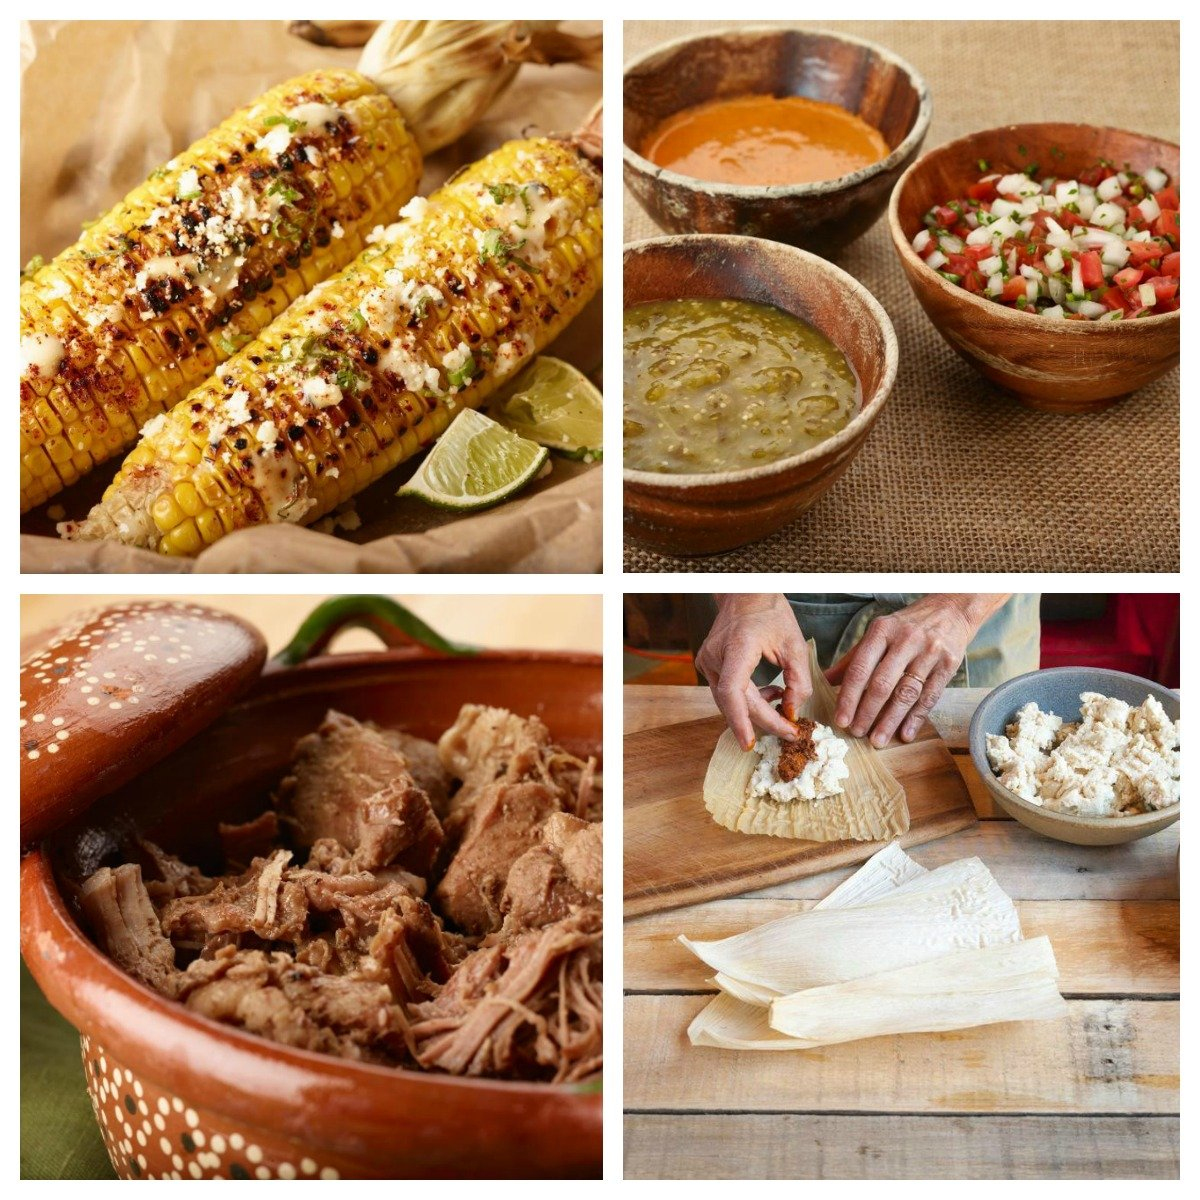 Craftsy celebrates Cinco de Mayo with Mexican and Latin Comfort Foods!